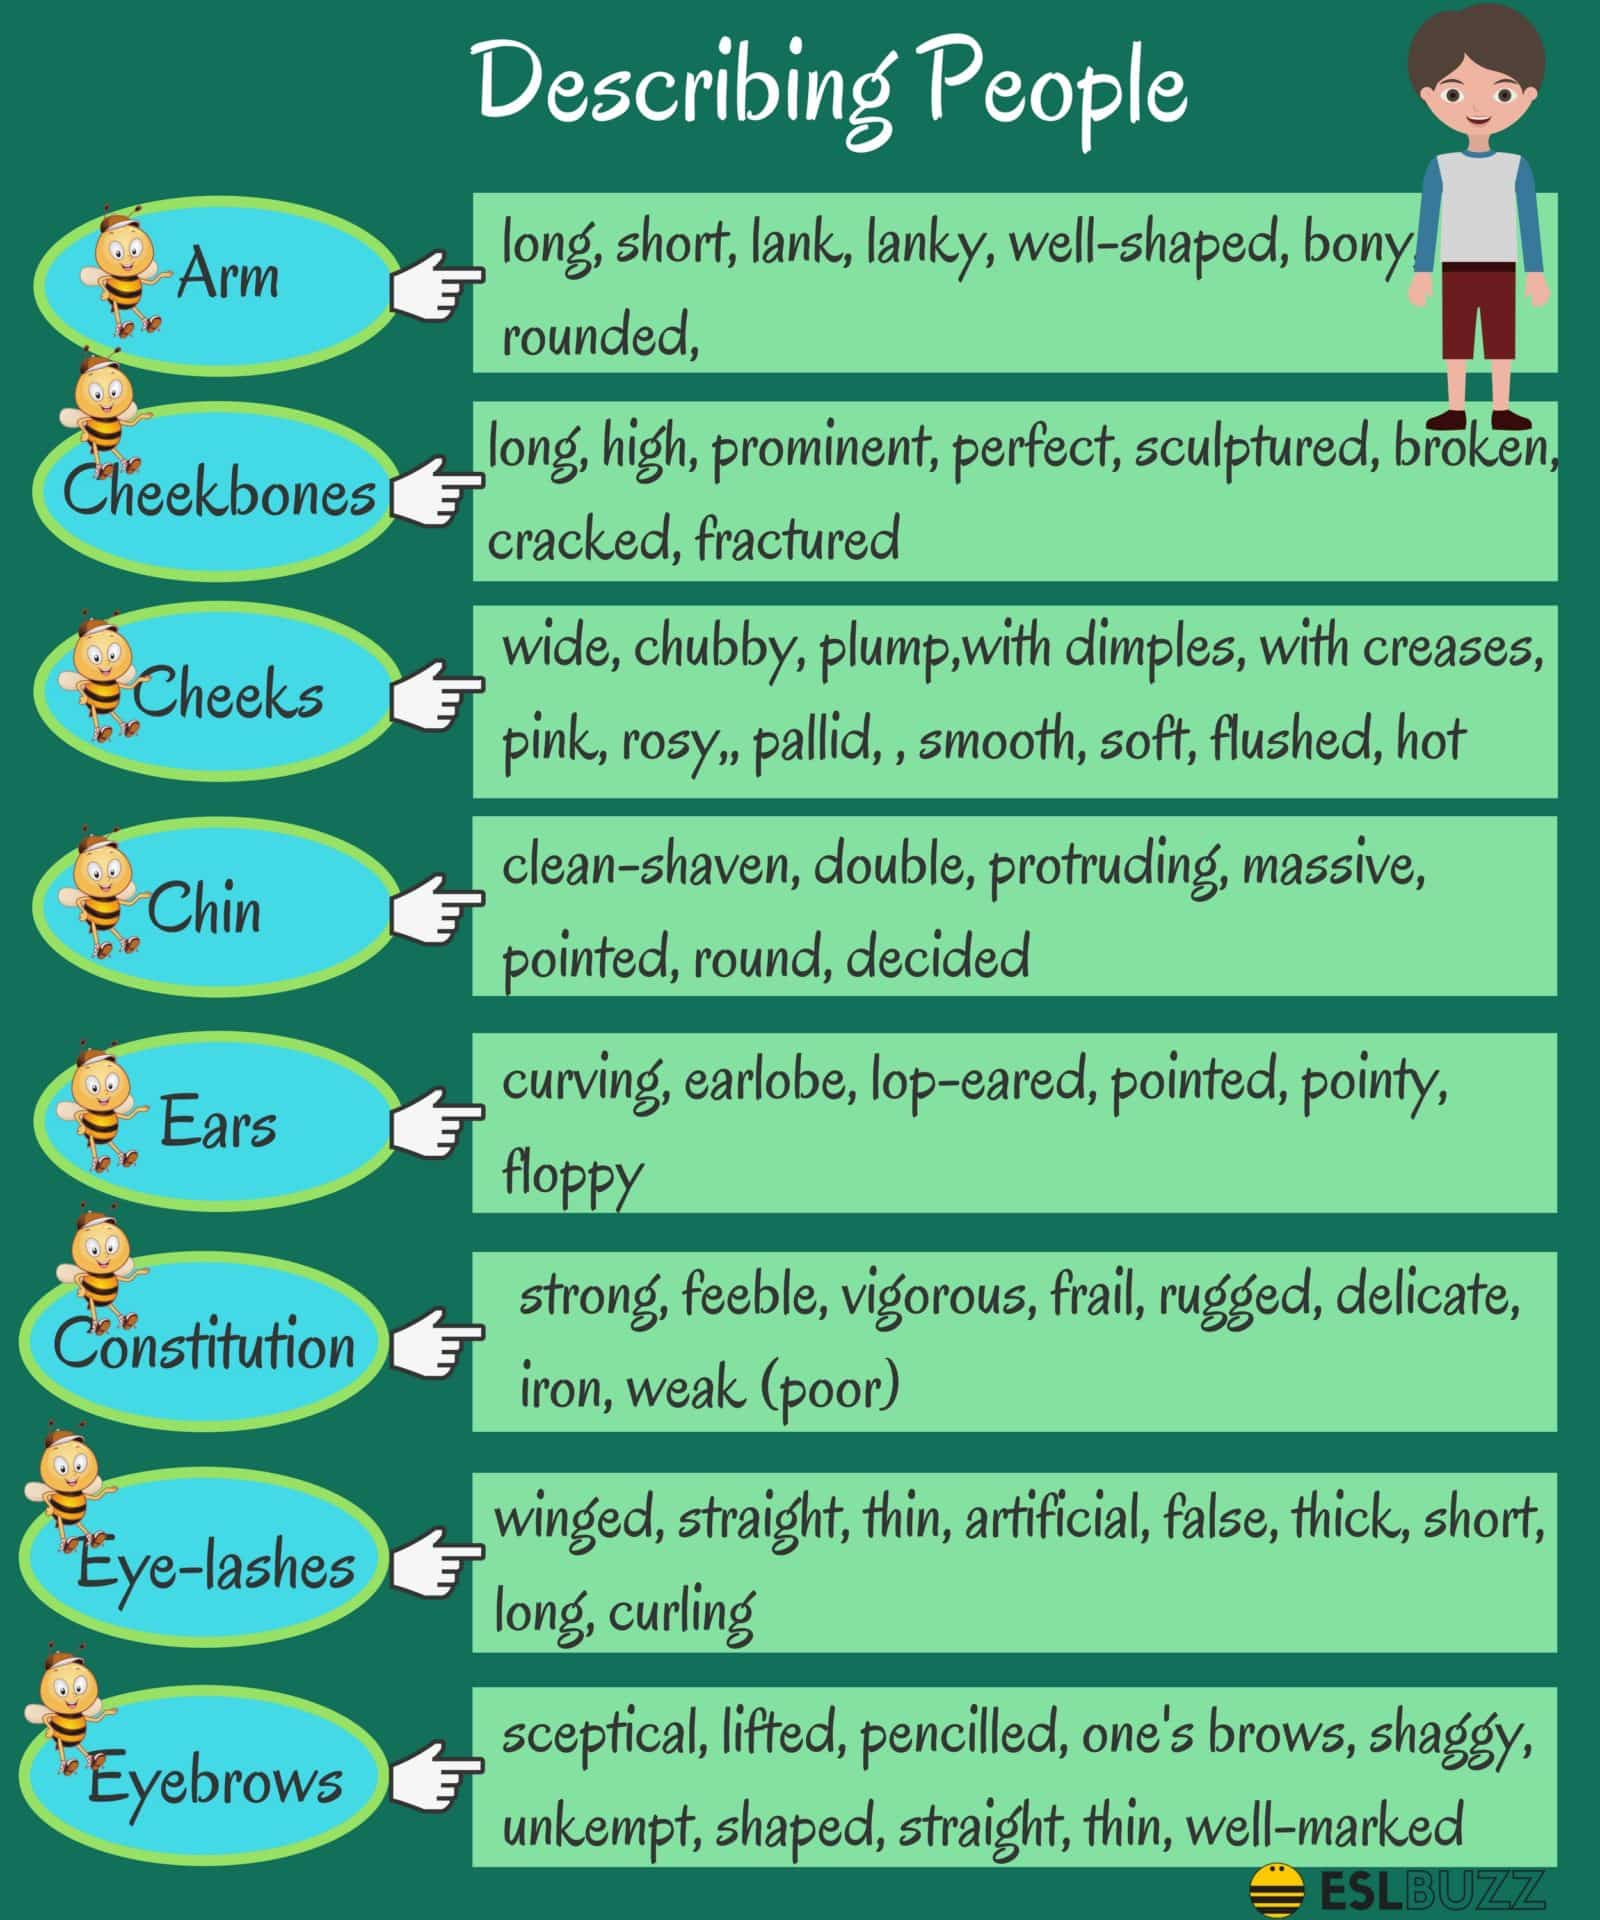 English Words For Describing A Person S Appearance